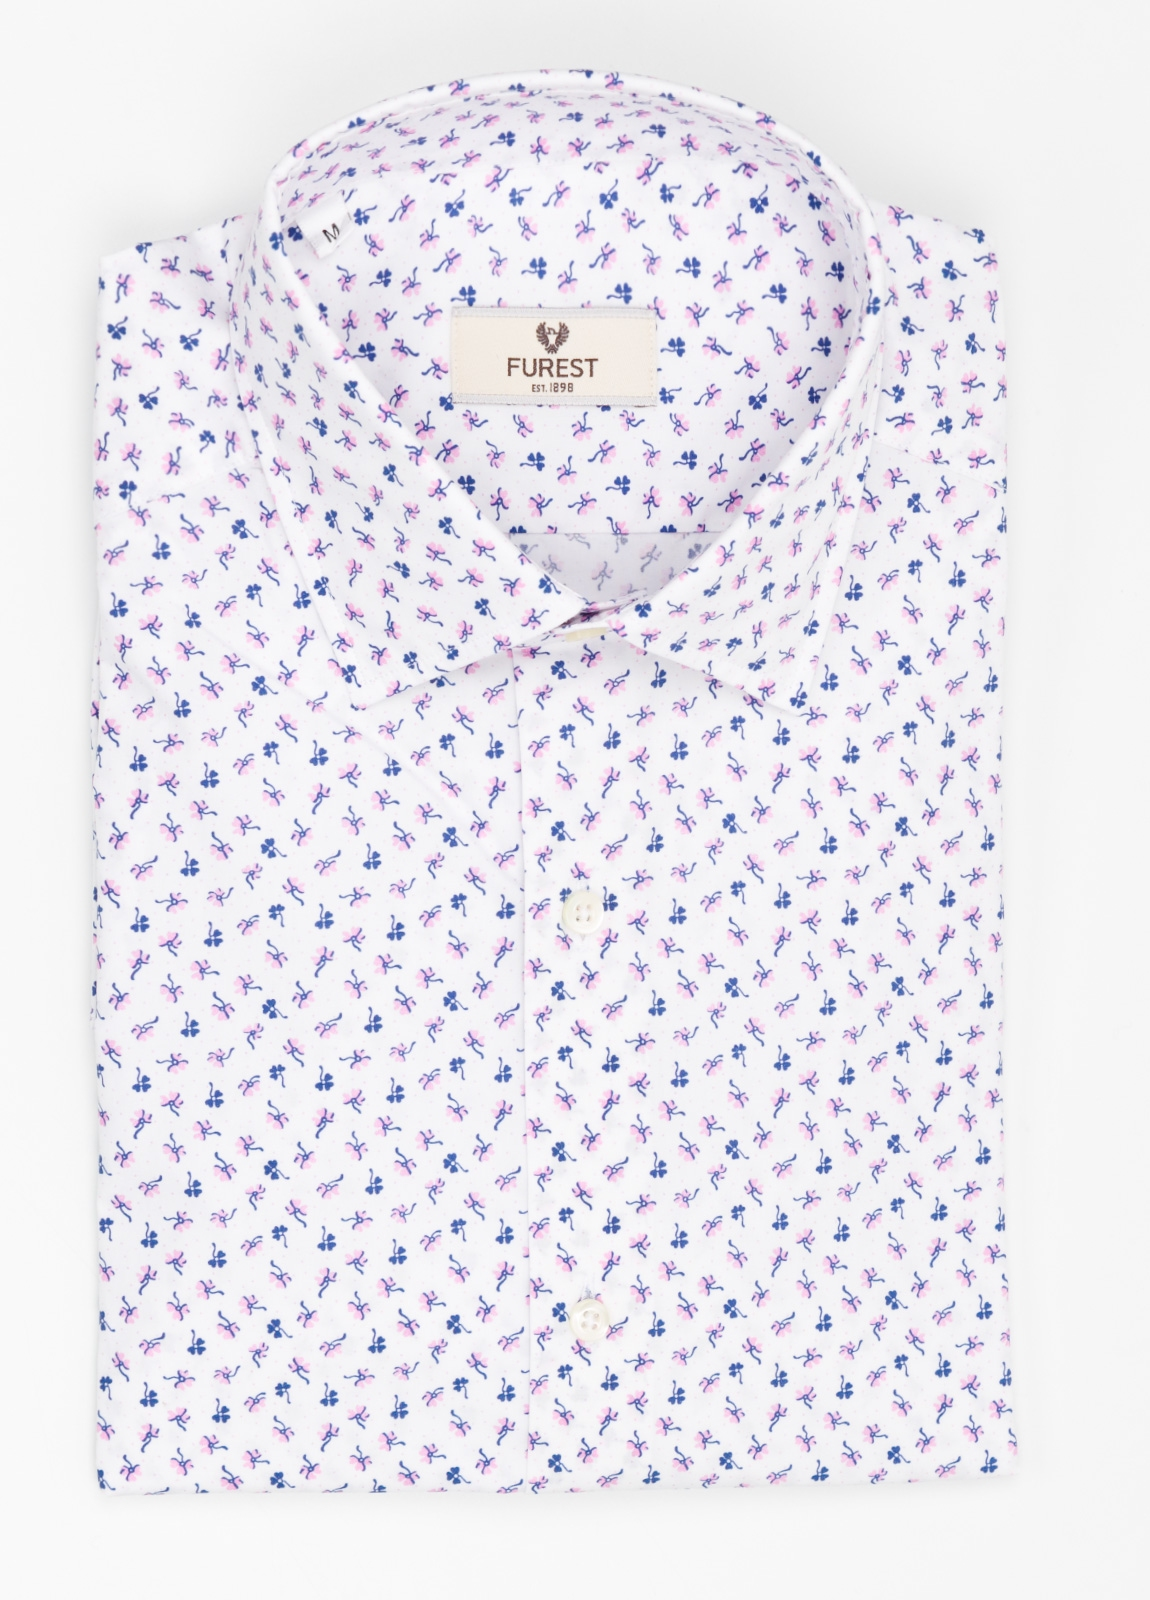 Camisa Leisure Wear REGULAR FIT modelo PORTO estampado floral color blanco. 100% Algodón.